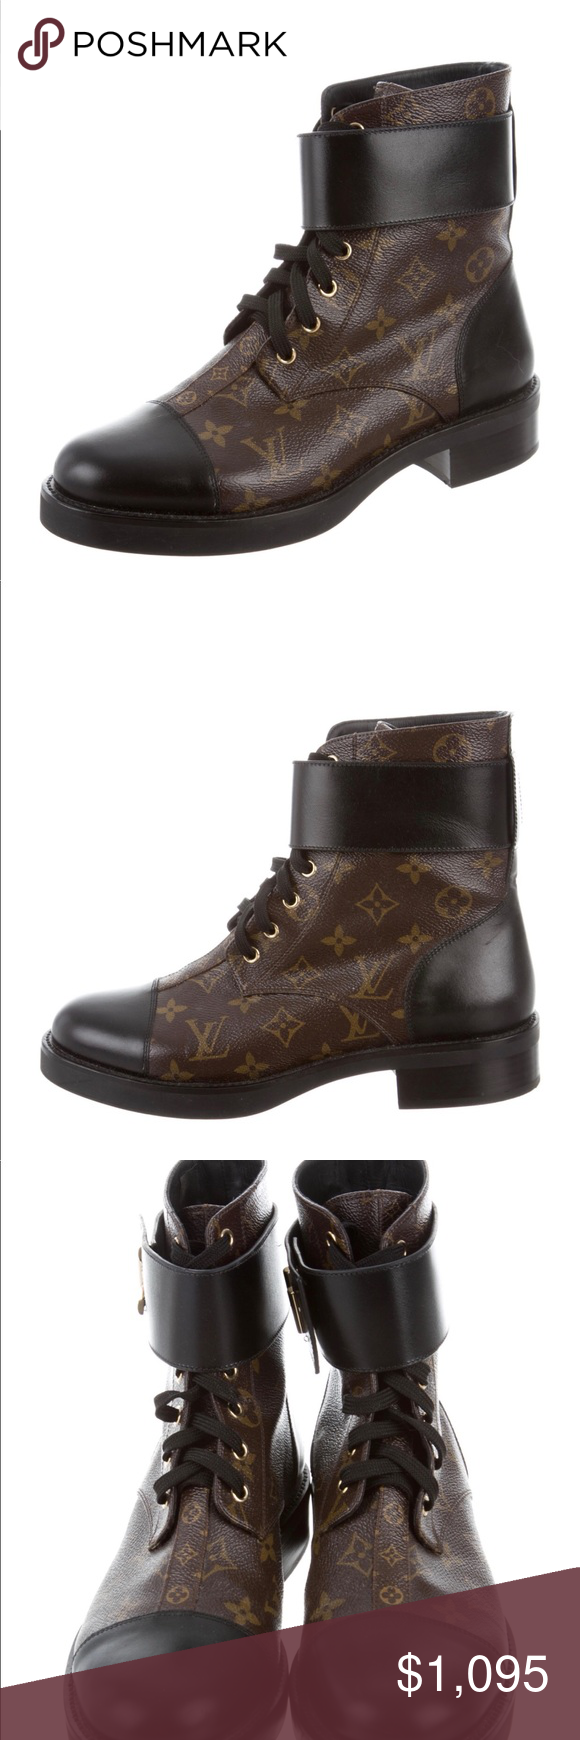 Louis Vuitton Brown Logo Wonderland Combat Boots Here is a pre-owned pair of LV Wonderland Ranger Combat boots in brown logo w/ gold hardware. These are in Great condition, minor signs of use & minor scuffs on soles. Plenty of life left. Comes w/ shoe bag. Date code is... NL 0137 40 M. These are hard to find & sold out. These are a size 40, but fit like a 9; they run 1 size small. Perfect w/ any outfit. Louis Vuitton Shoes Combat & Moto Boots